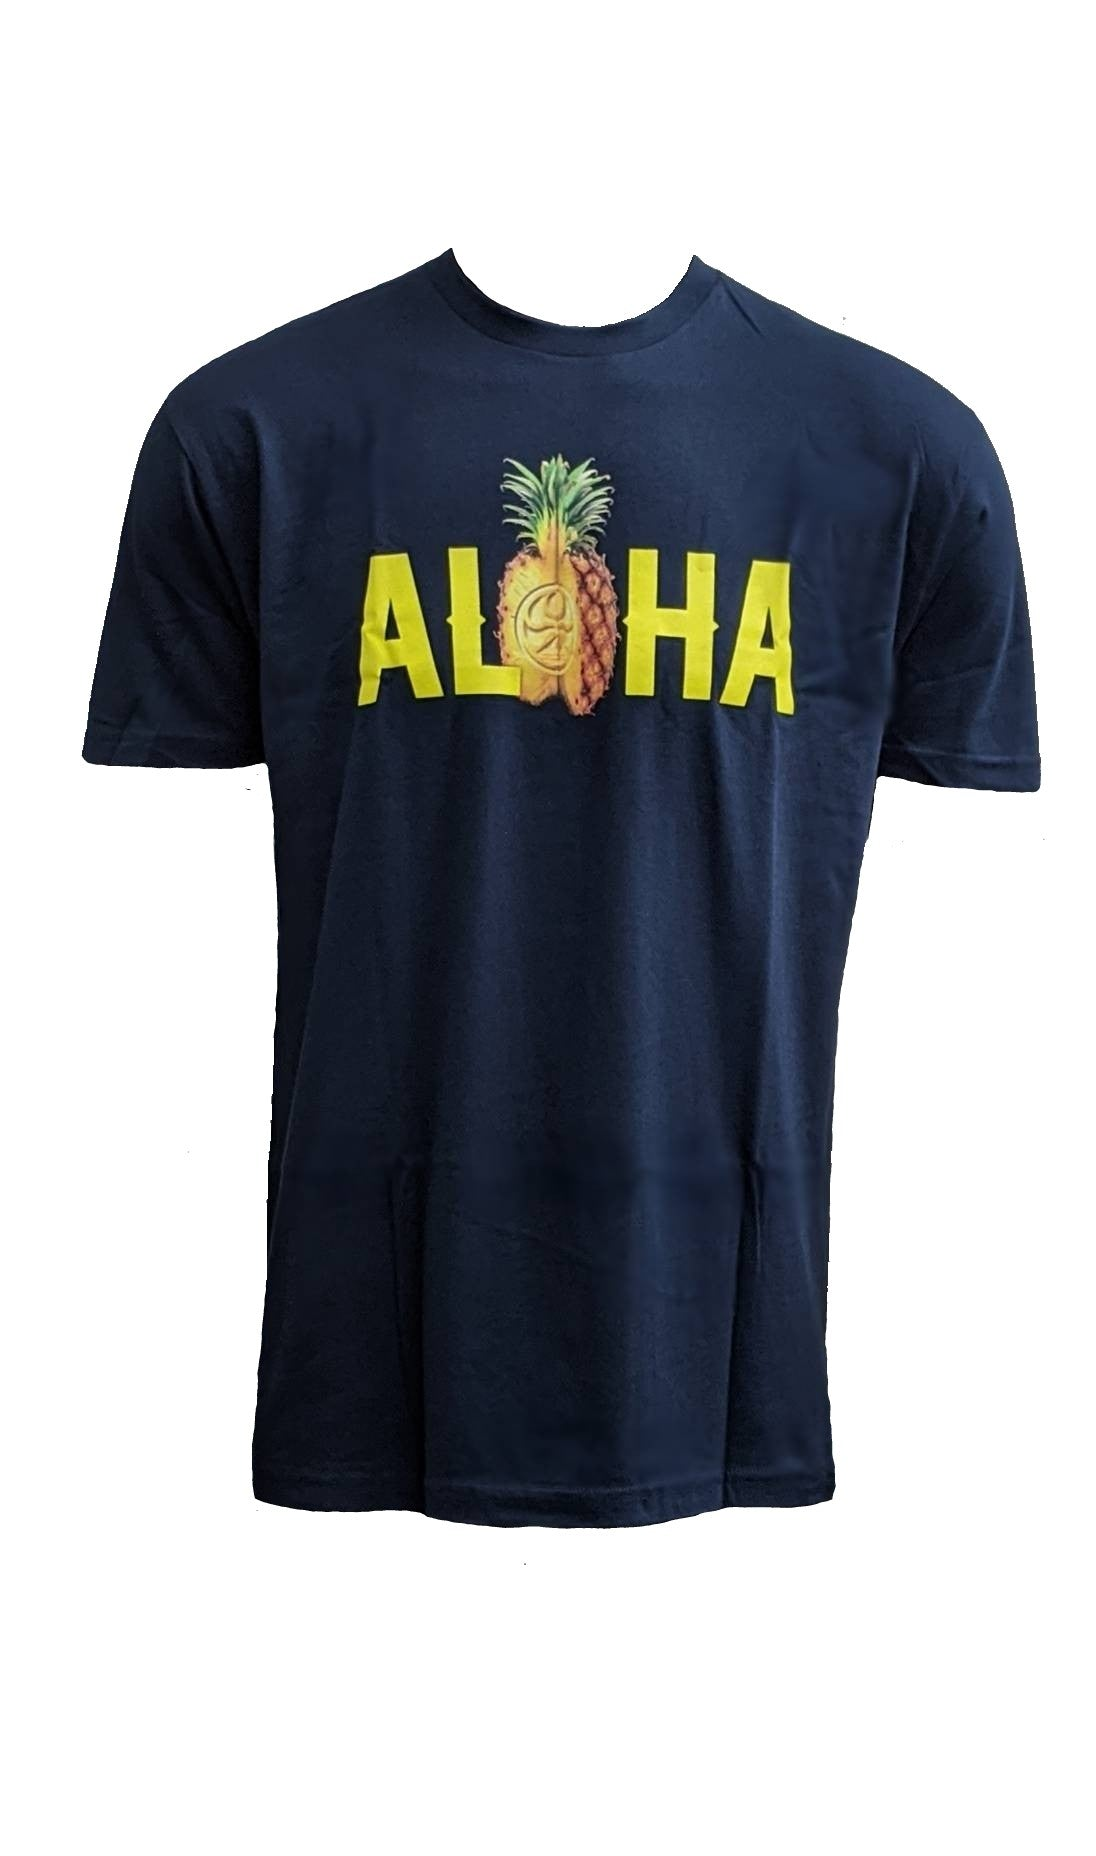 Pine Loha Men's T-Shirt